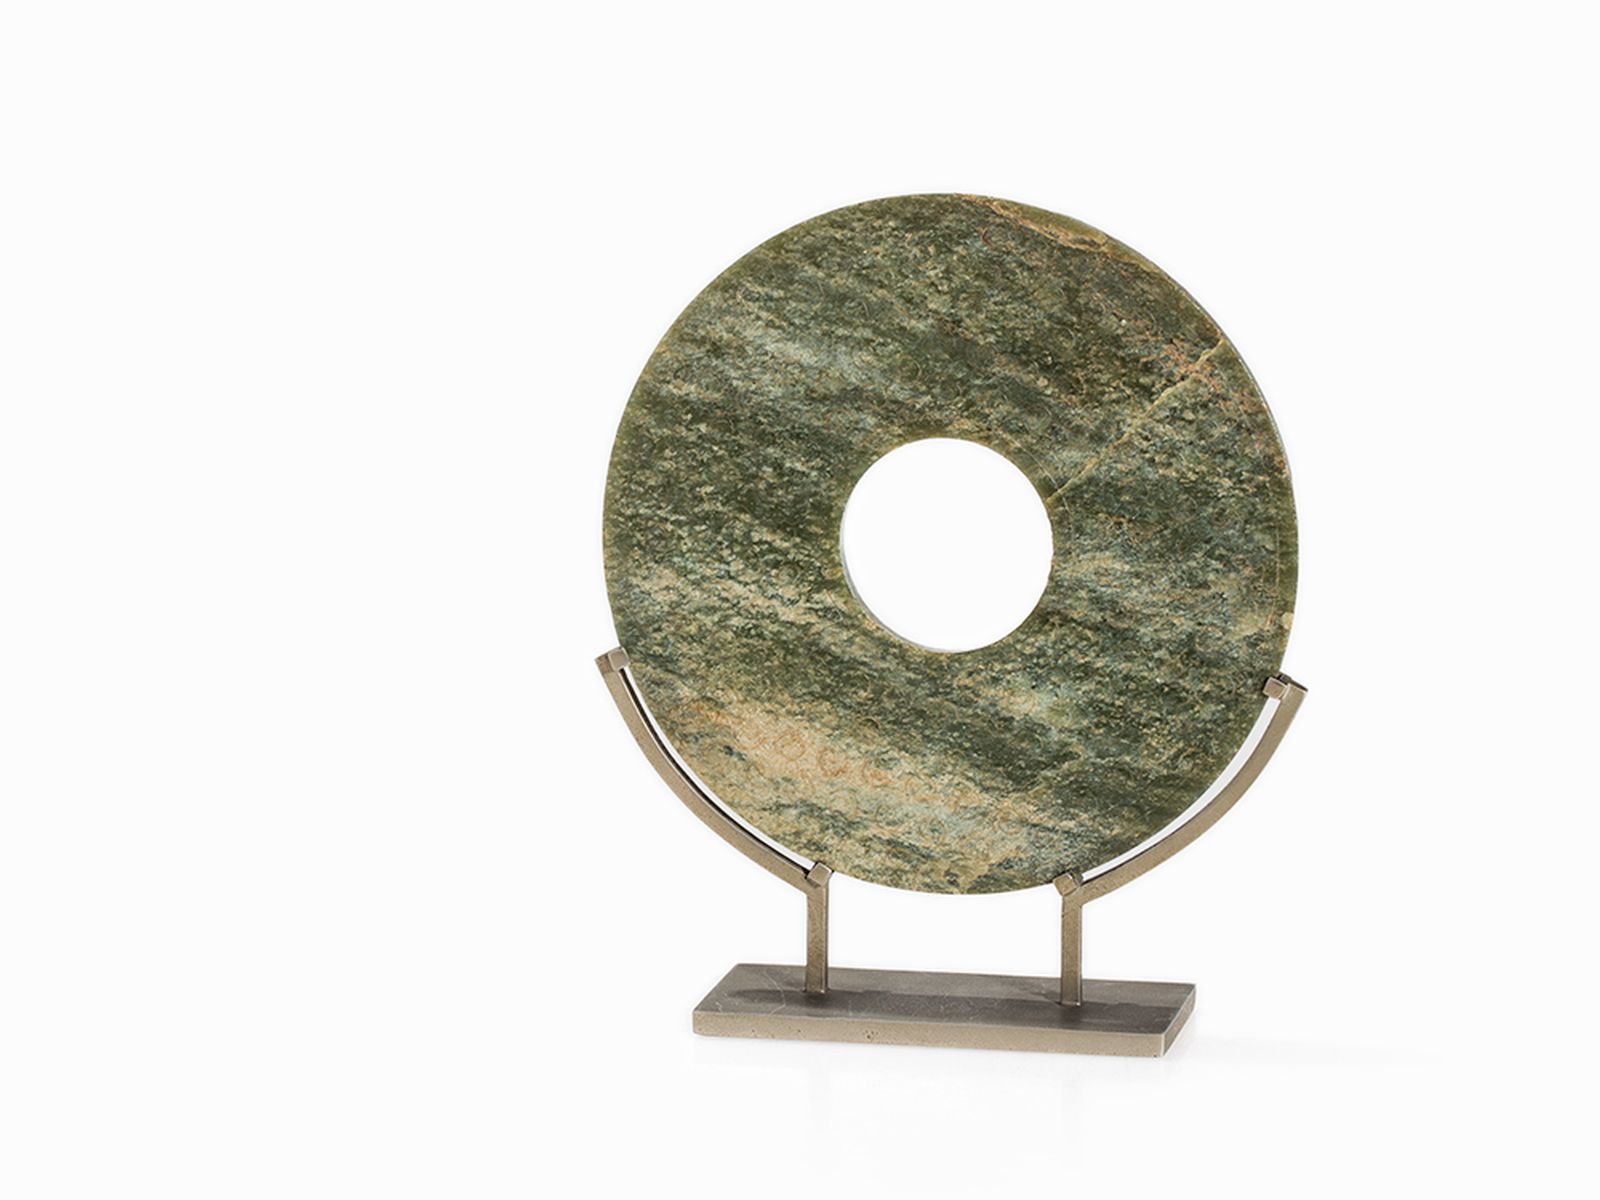 #70 Jade BI disc in Archaistic style, Qing Dynasty | Jade BI Scheibe im Archaistischen Stil, Qing-Dynastie Image